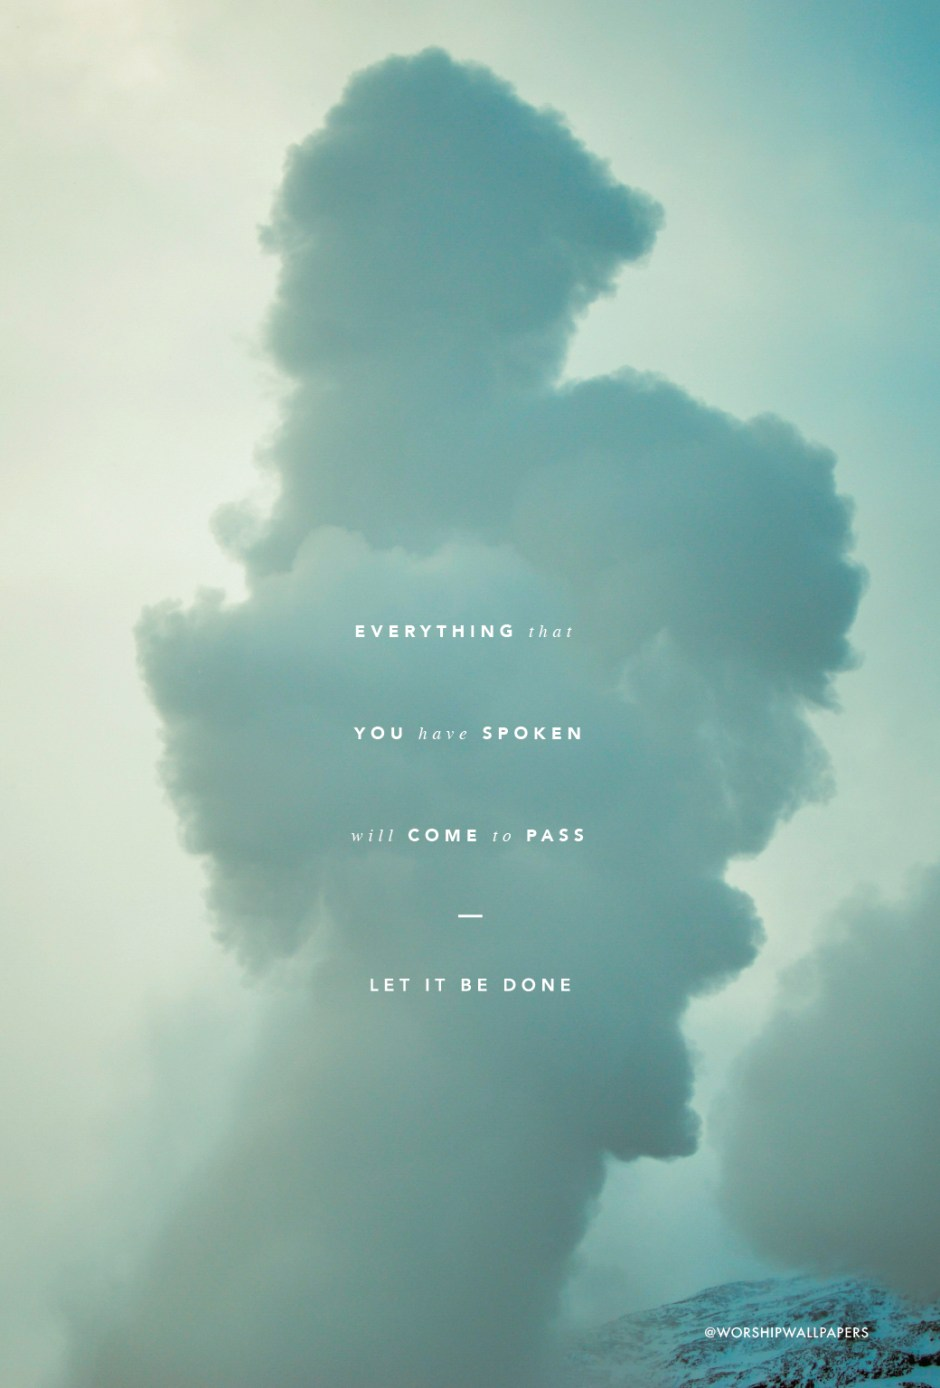 Iphone Cloud Wallpaper There Is Cloud Elevation Worship Worship Wallpapers